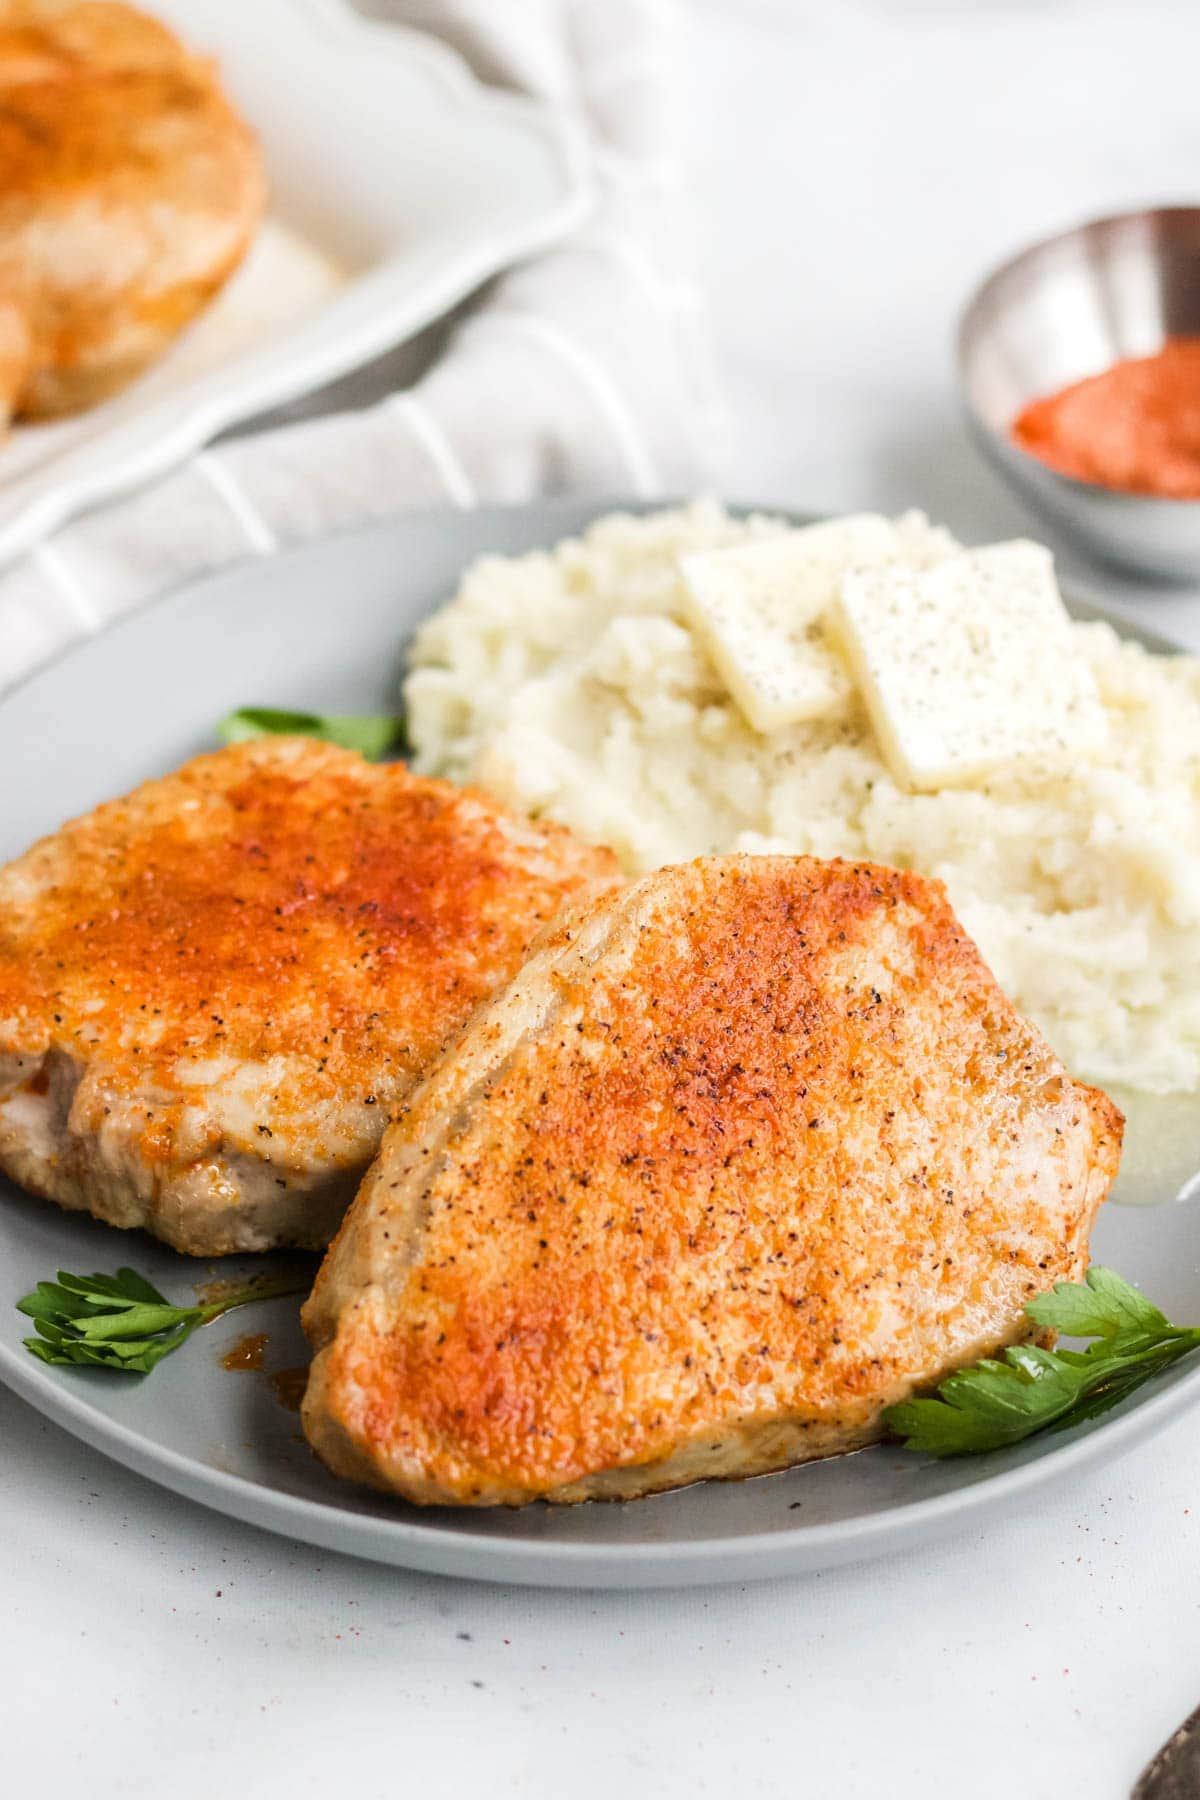 plate with mashed potatoes, pork chops and parsley